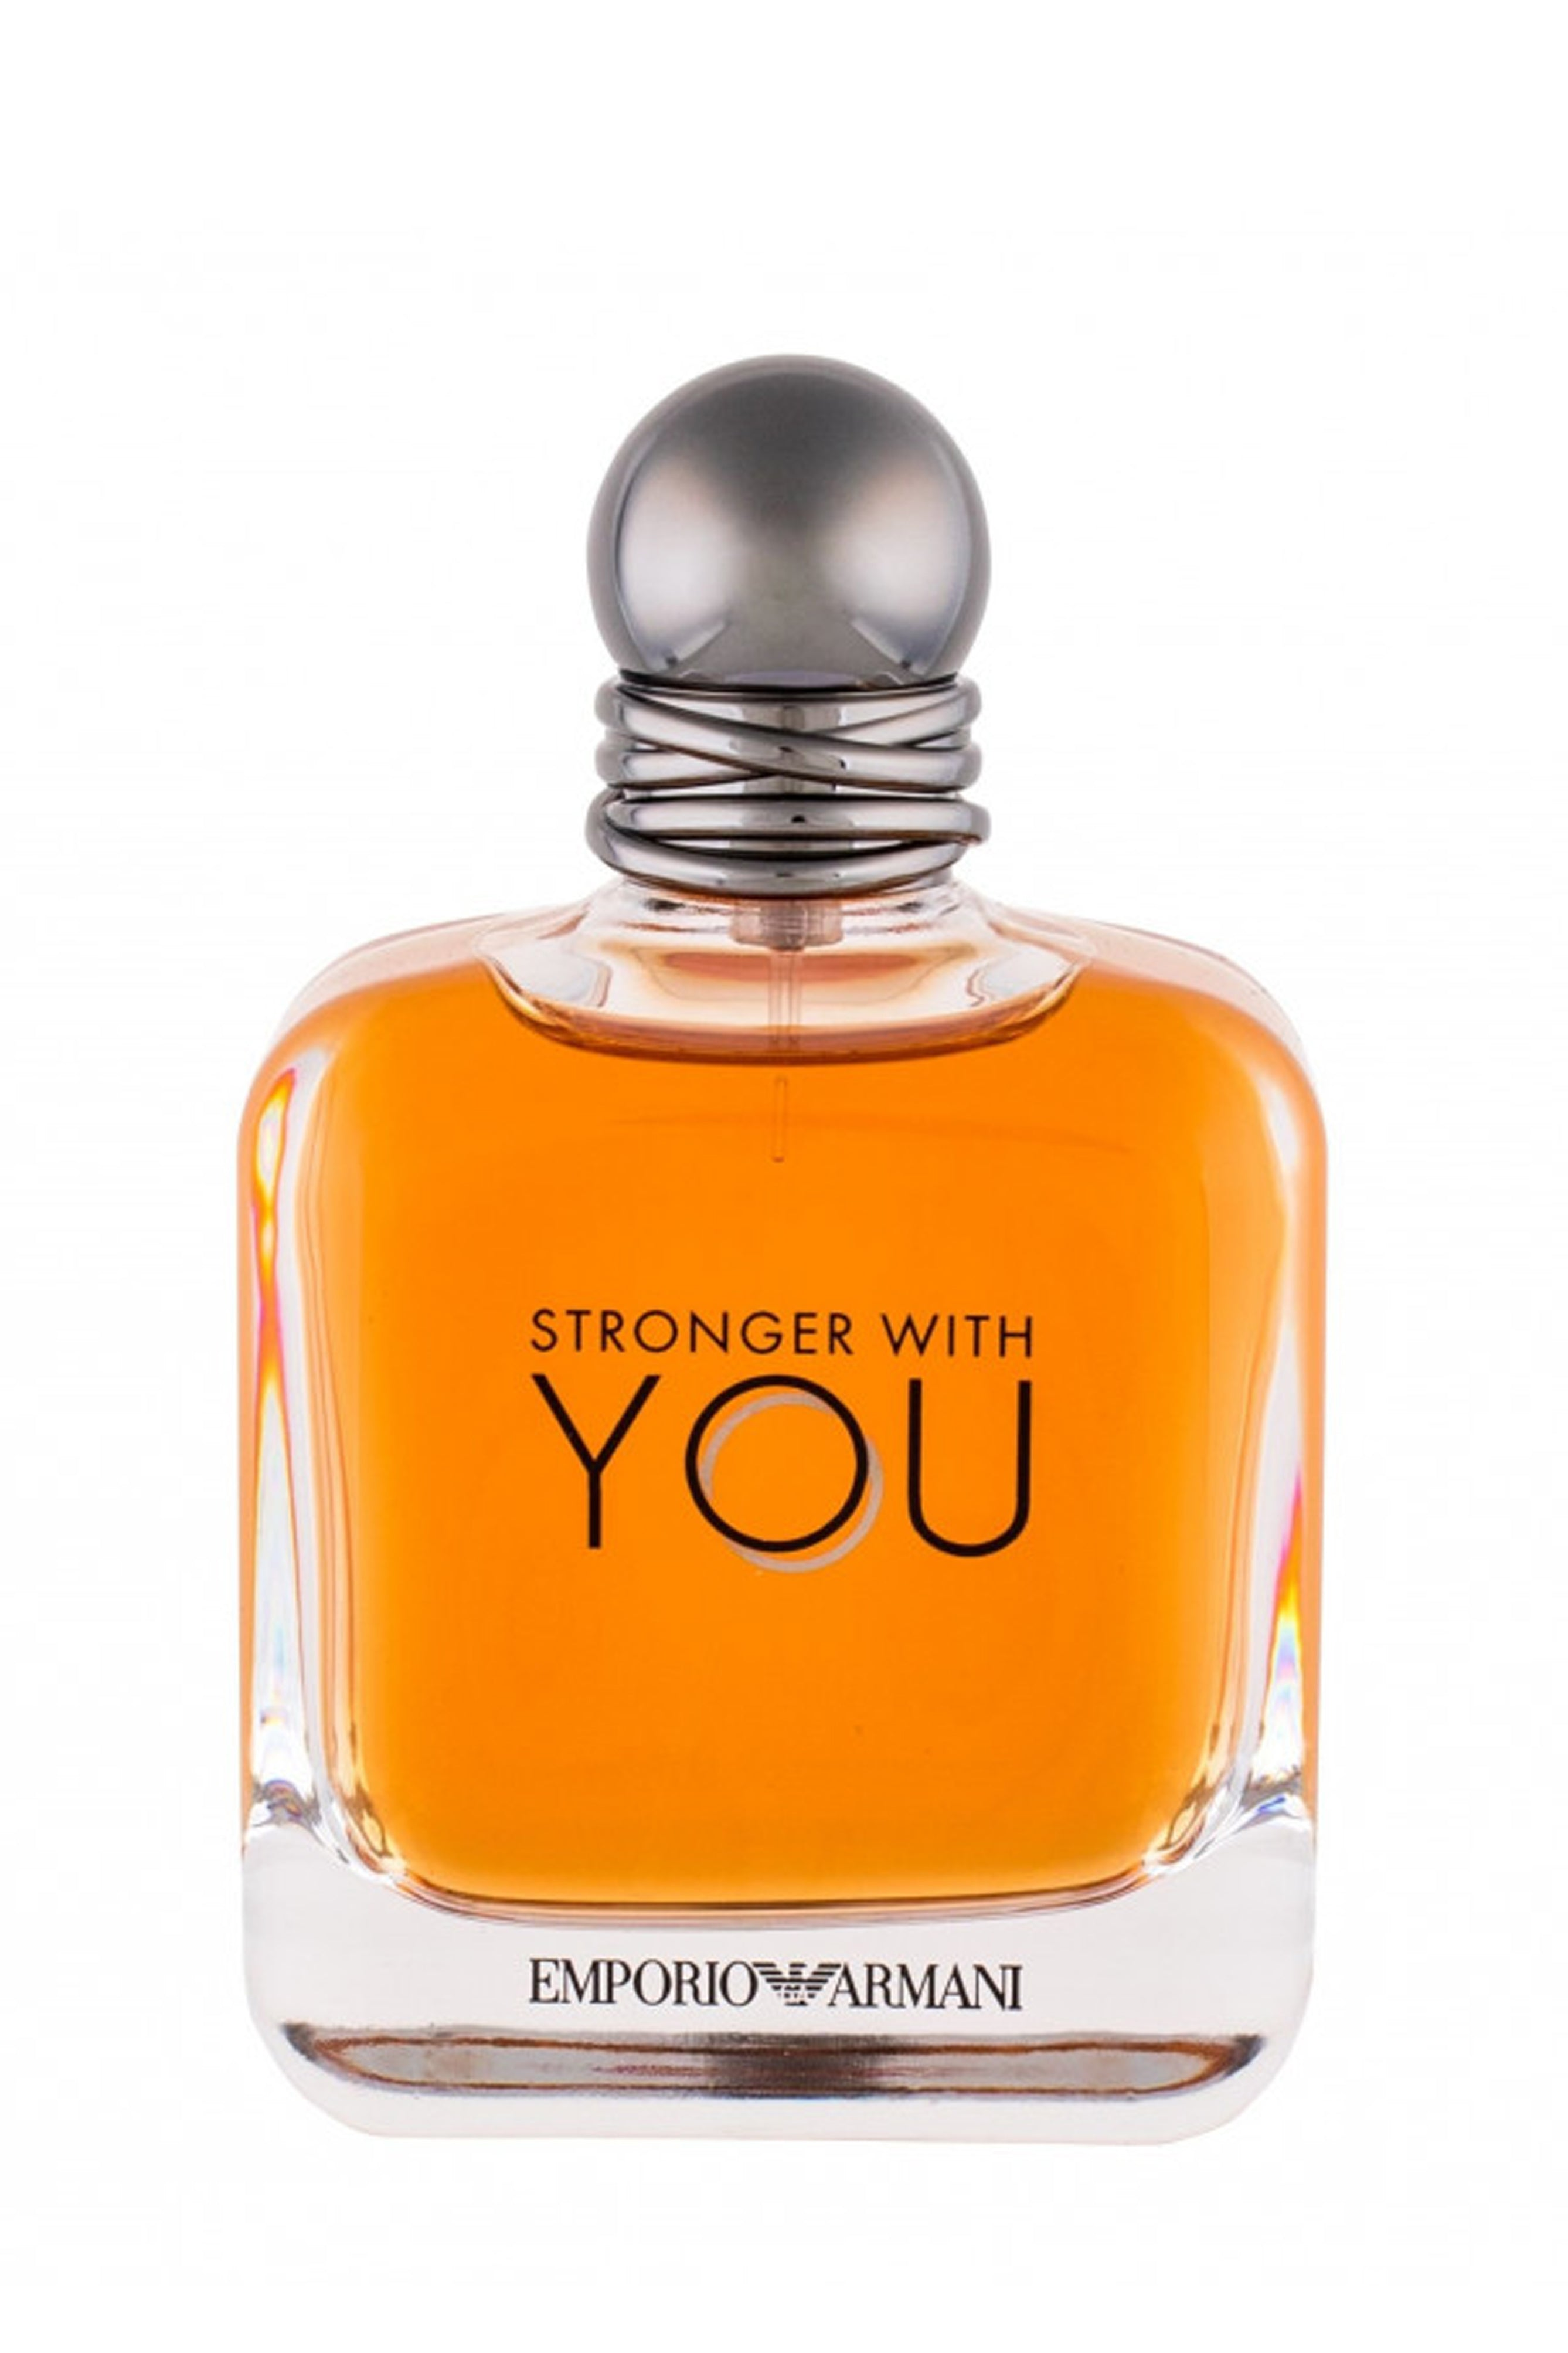 EMPORIO ARMANI Stronger With You 100ml - Life Pharmacy St Lukes